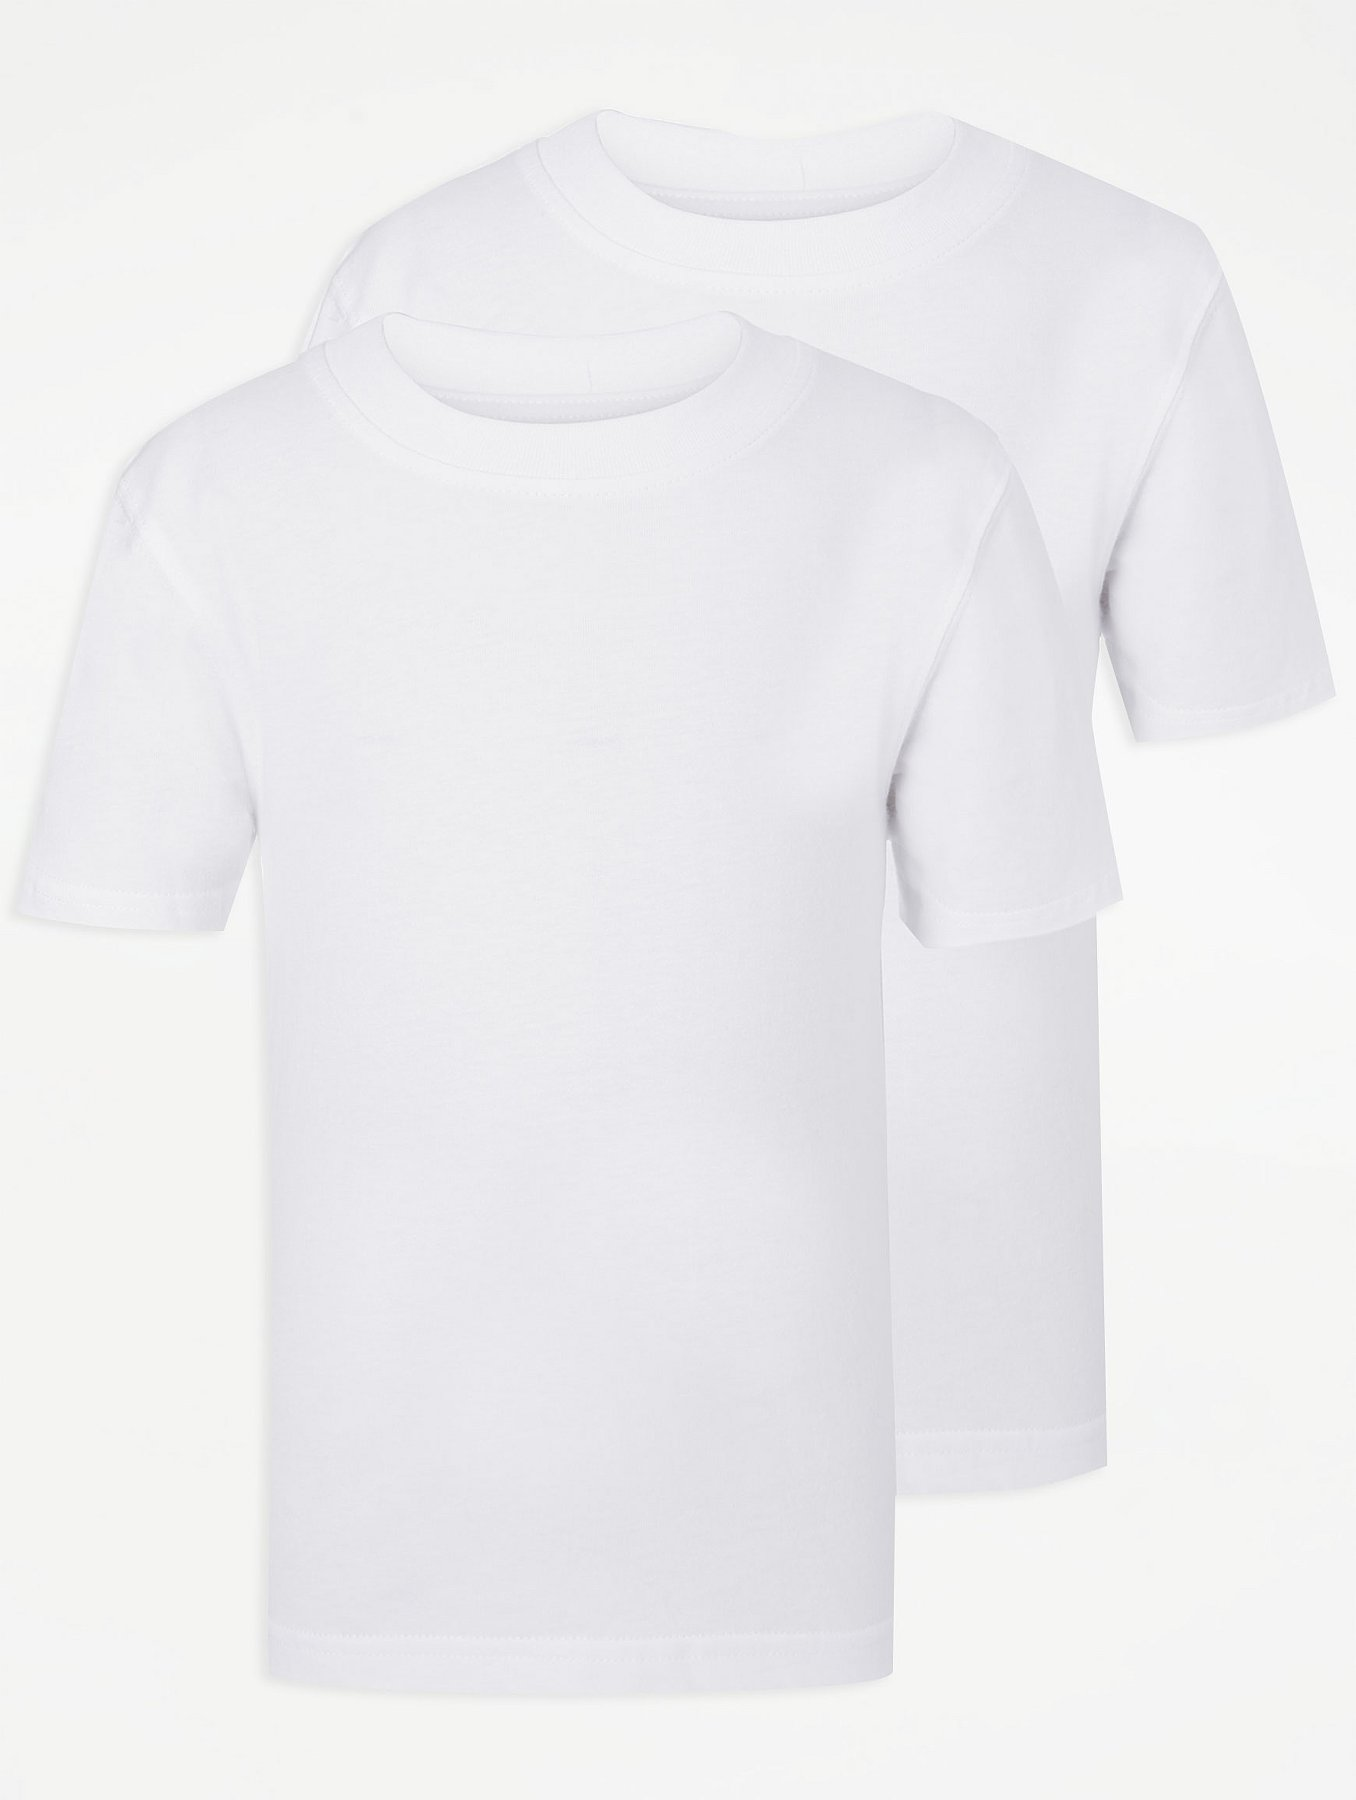 White Jersey Round Neck T-Shirt - 10 / WHITE I Saw It First Visa Payment Cheap Online vloeu